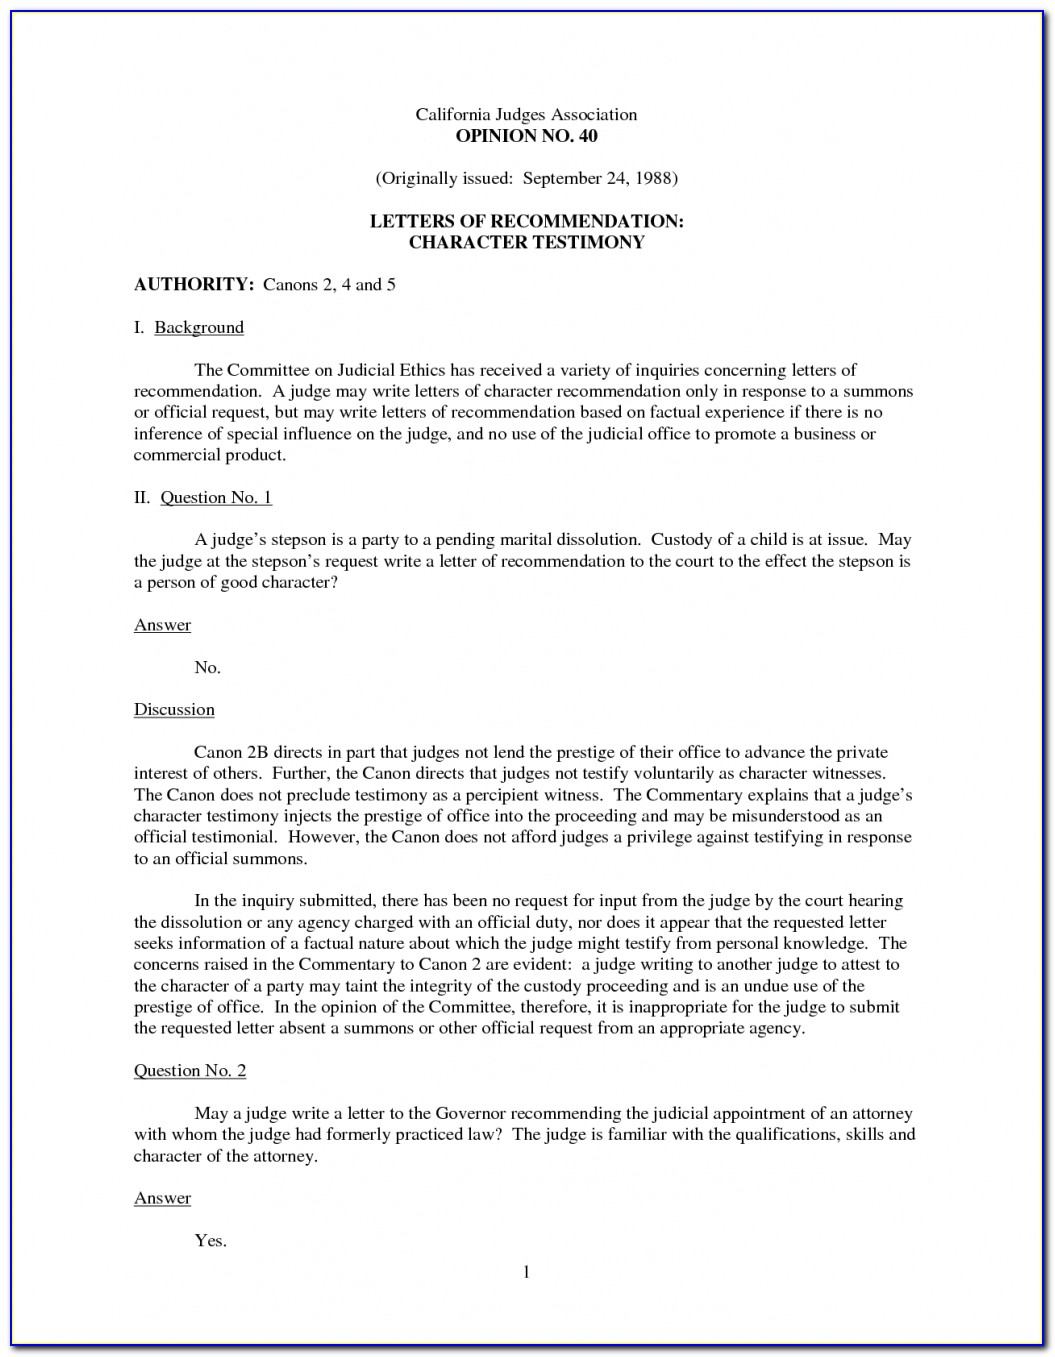 Character Reference Letter Court For Child Custody Case